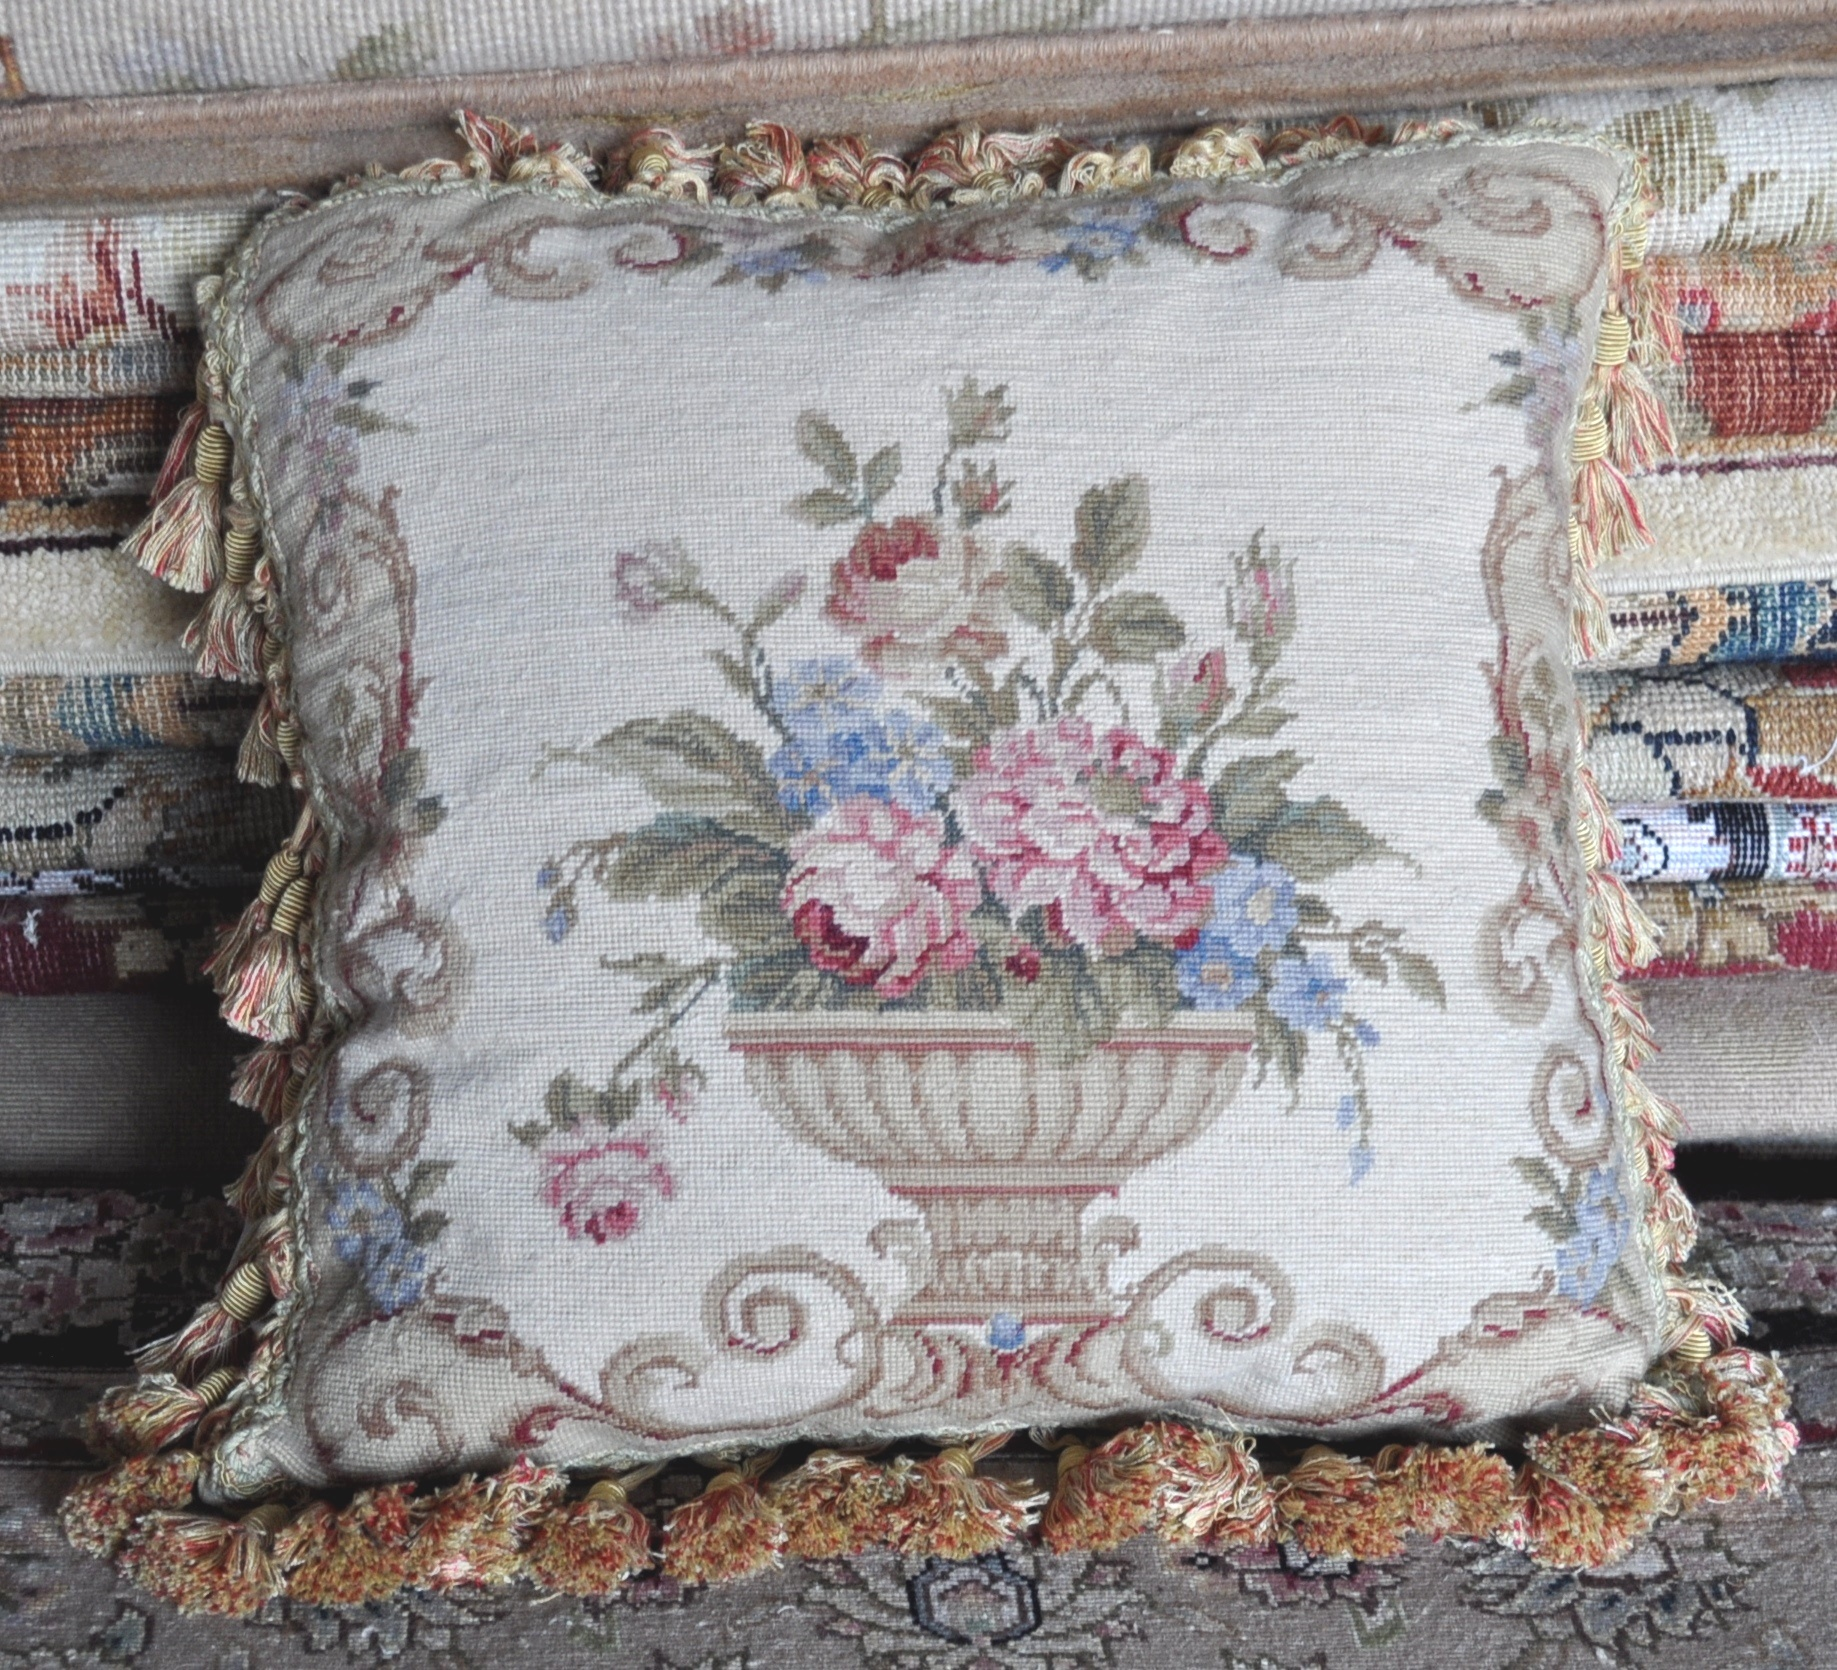 16″ x 16″ Handmade Wool Needlepoint Urn Flowers Roses Cushion Cover Pillow Case 12980902